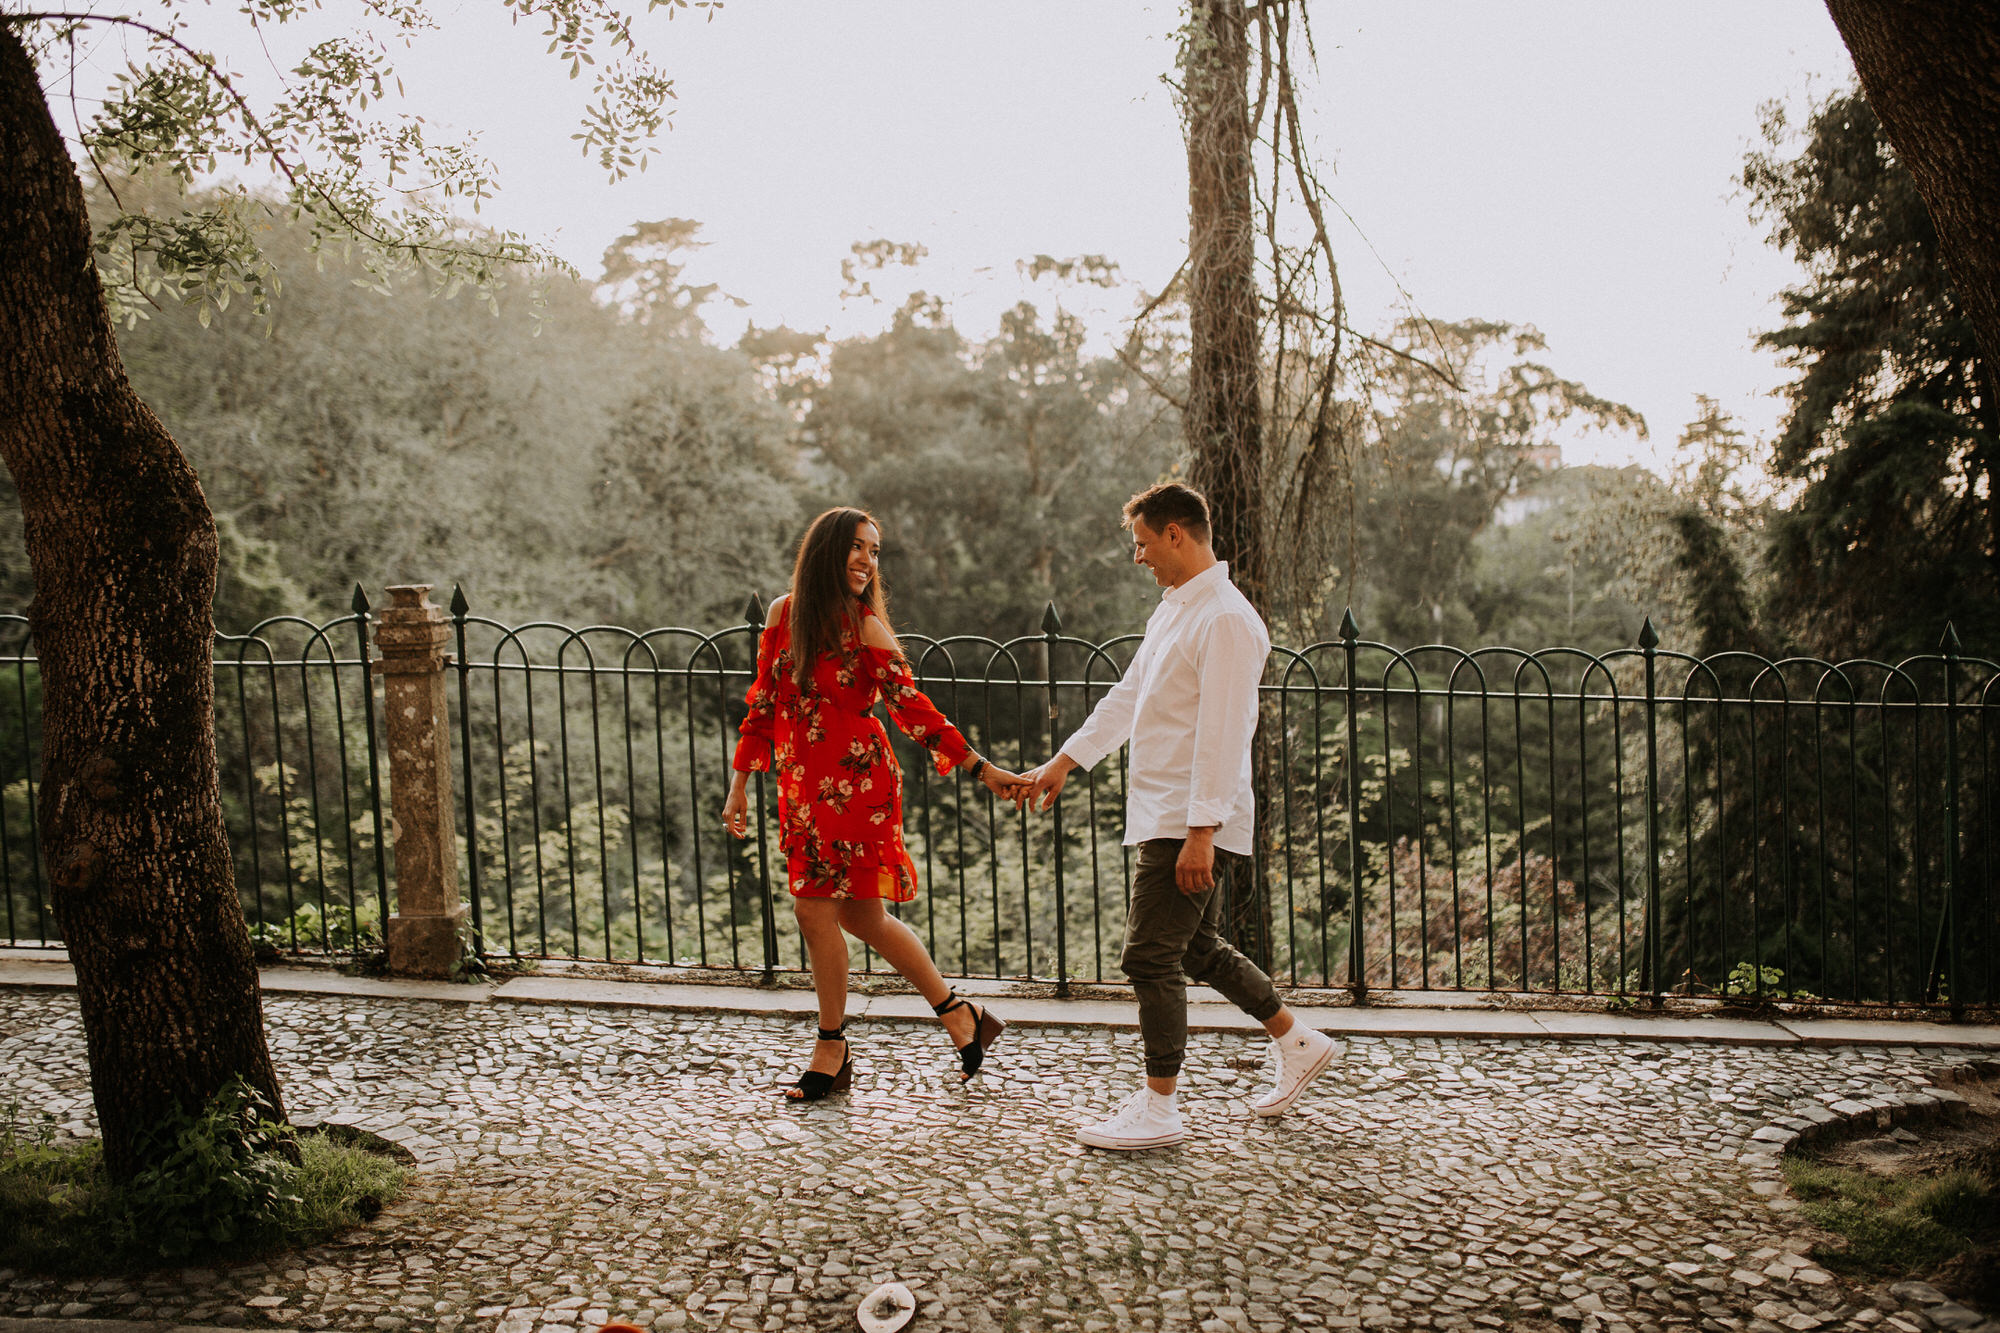 29-sessao-noivado-engagement-love-session-Sintra-lisboa-town-wedding-photography-photographer-natural-best-venue-planner-destination-filipe-santiago-fotografia-lifestyle-documentary